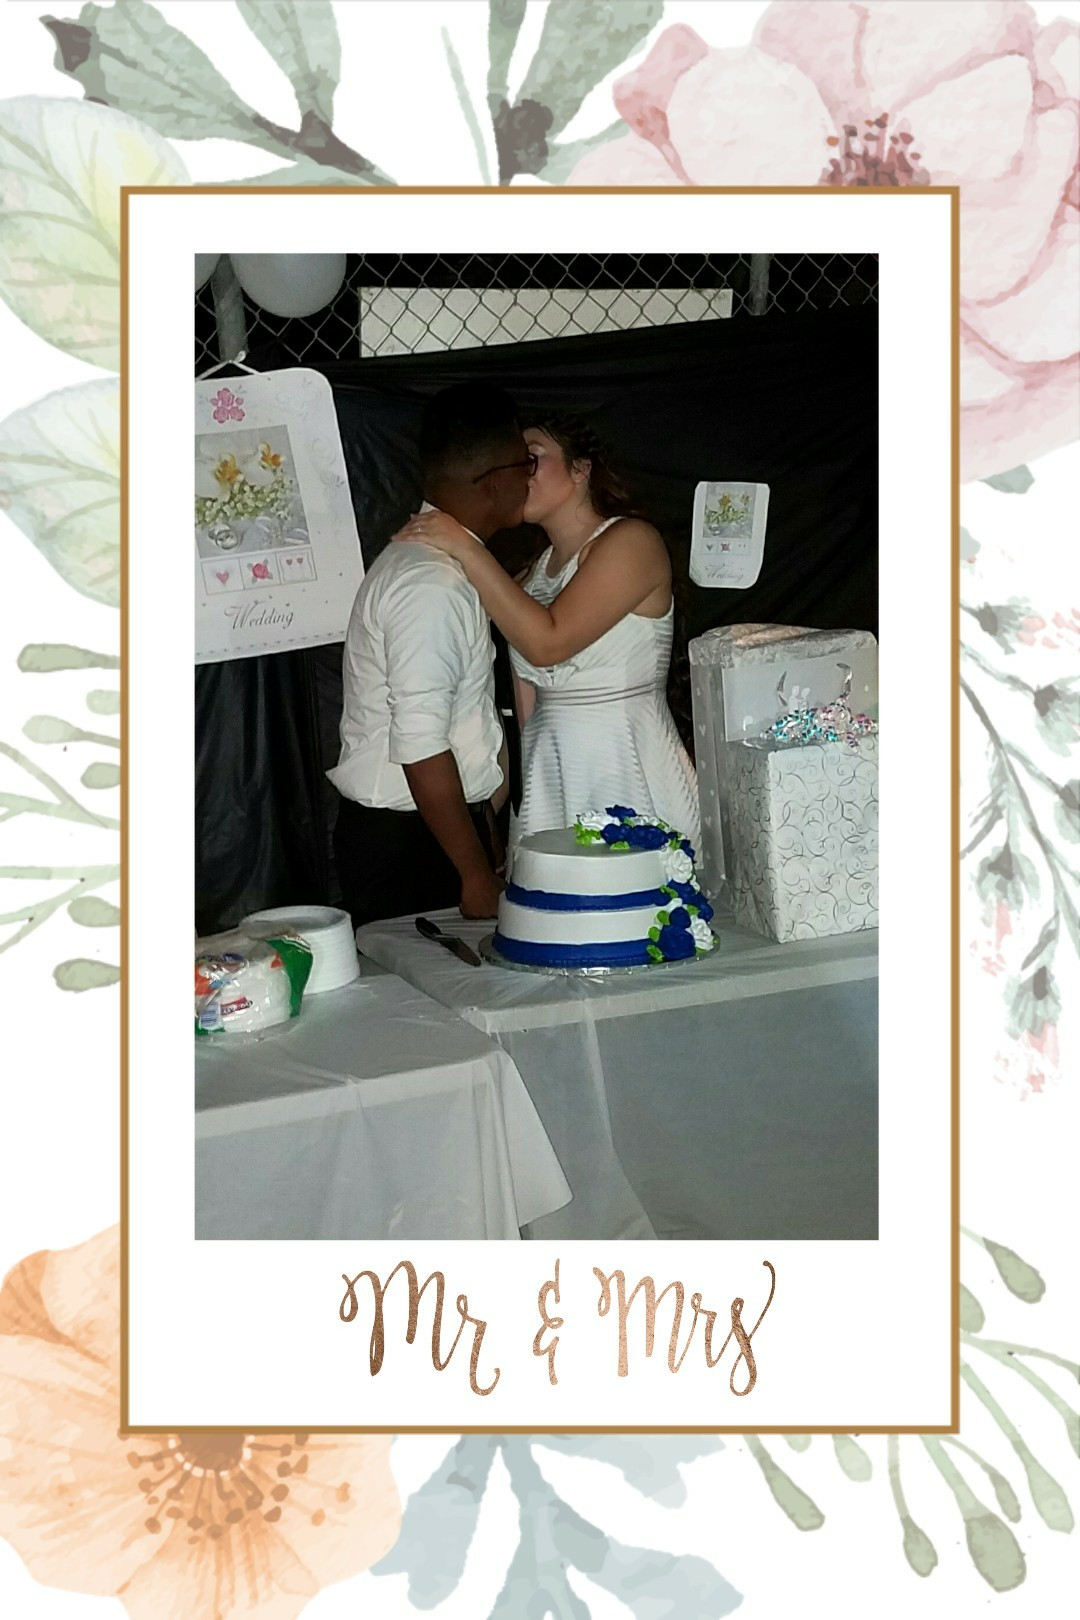 ♧click♧ i love my husband ♡ i got married ♡  had a last minute party lol actual wedding coming soon♡♡♡ cant wait! also, sorry i have not been on here in forever. been preettyyy busy and piccollage isnt really working...